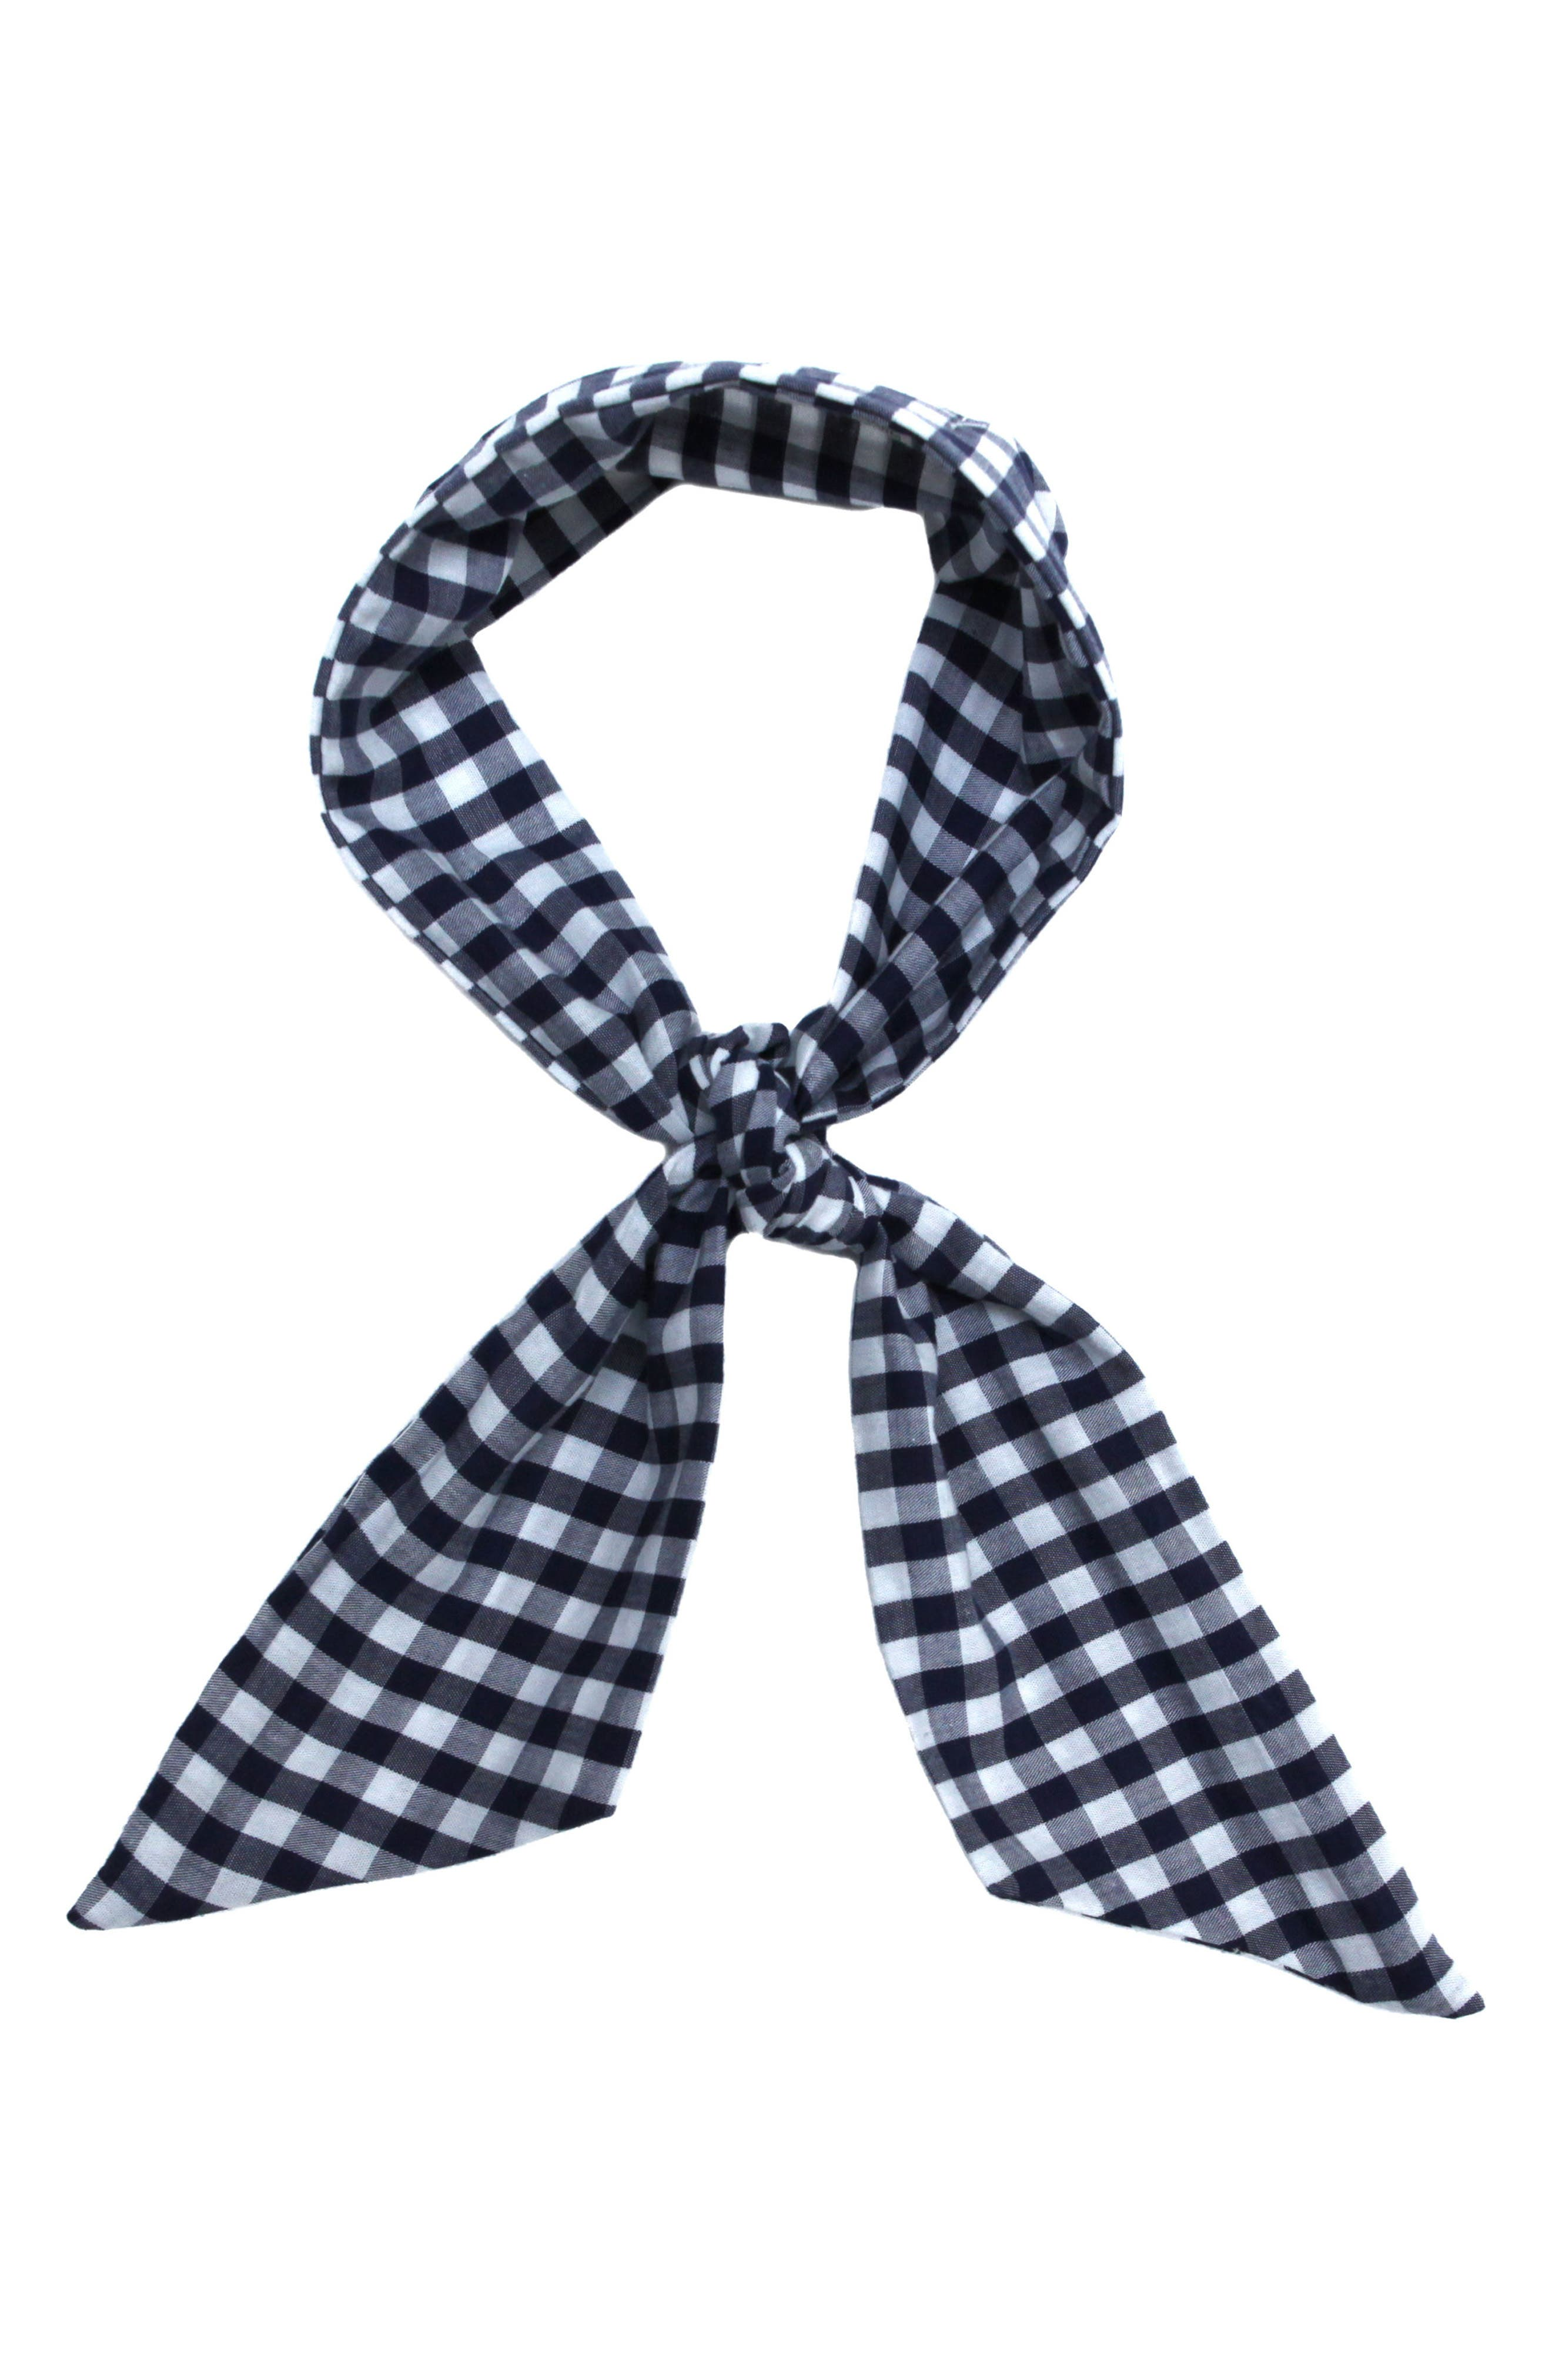 Main Image - Donni Charm Gingham Wire Scarf